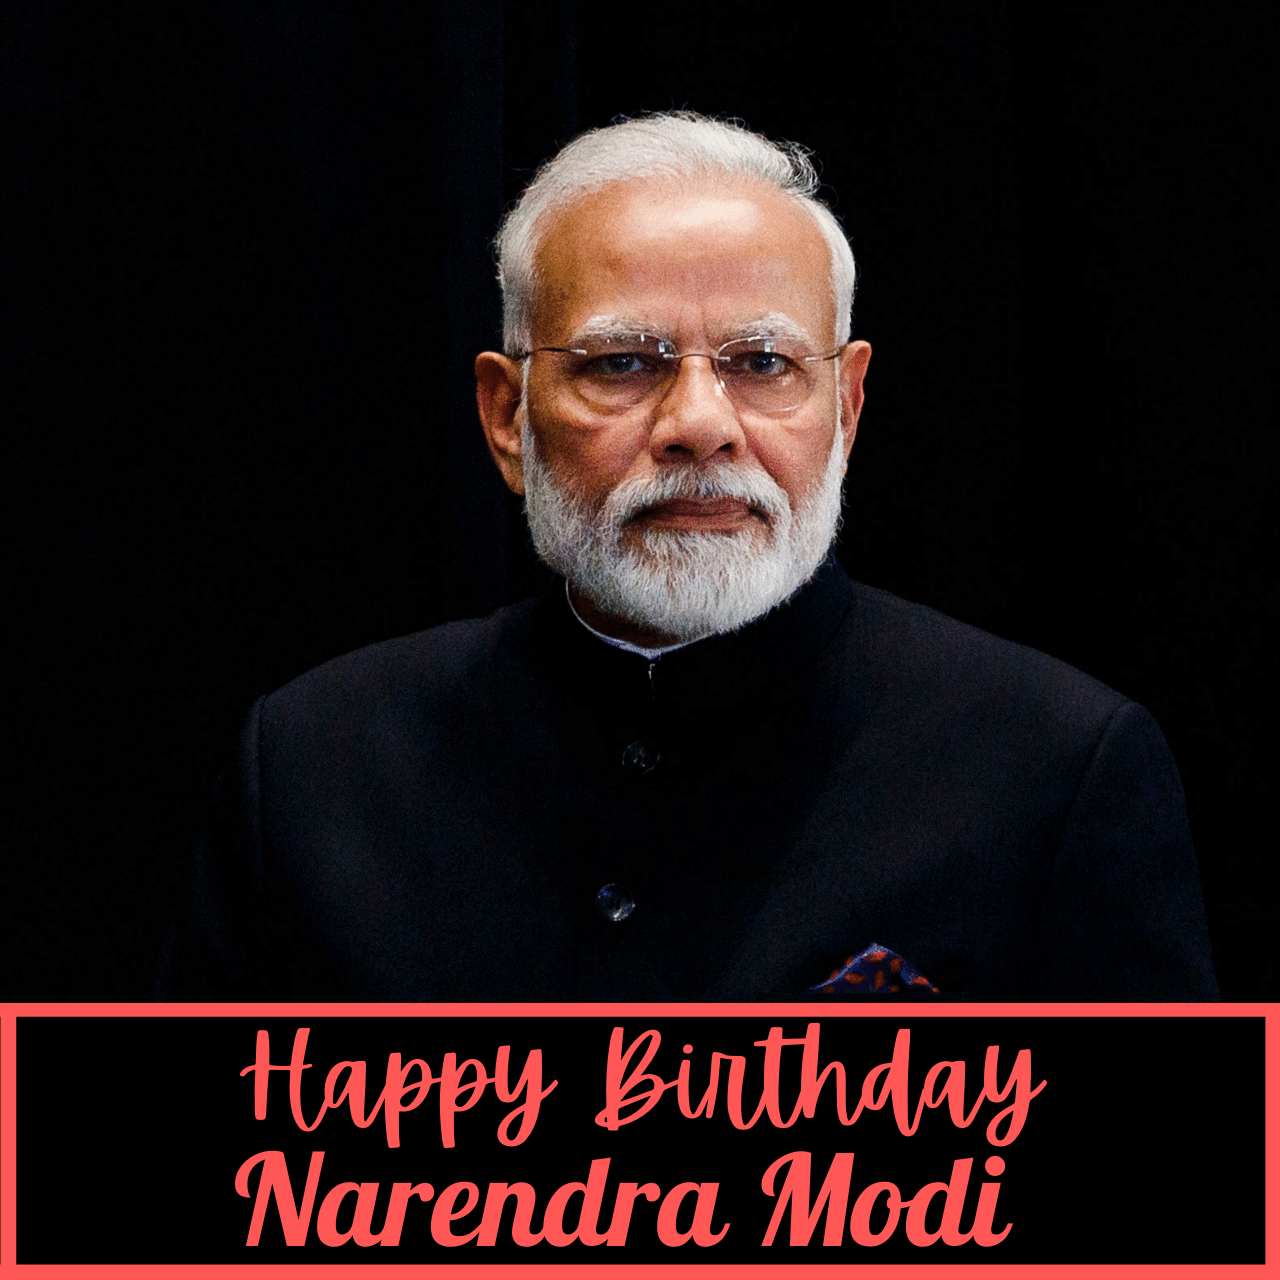 Happy Birthday Narendra Modi Wishes, Poster, Banner, Card, and Images to greet Indian prime minister